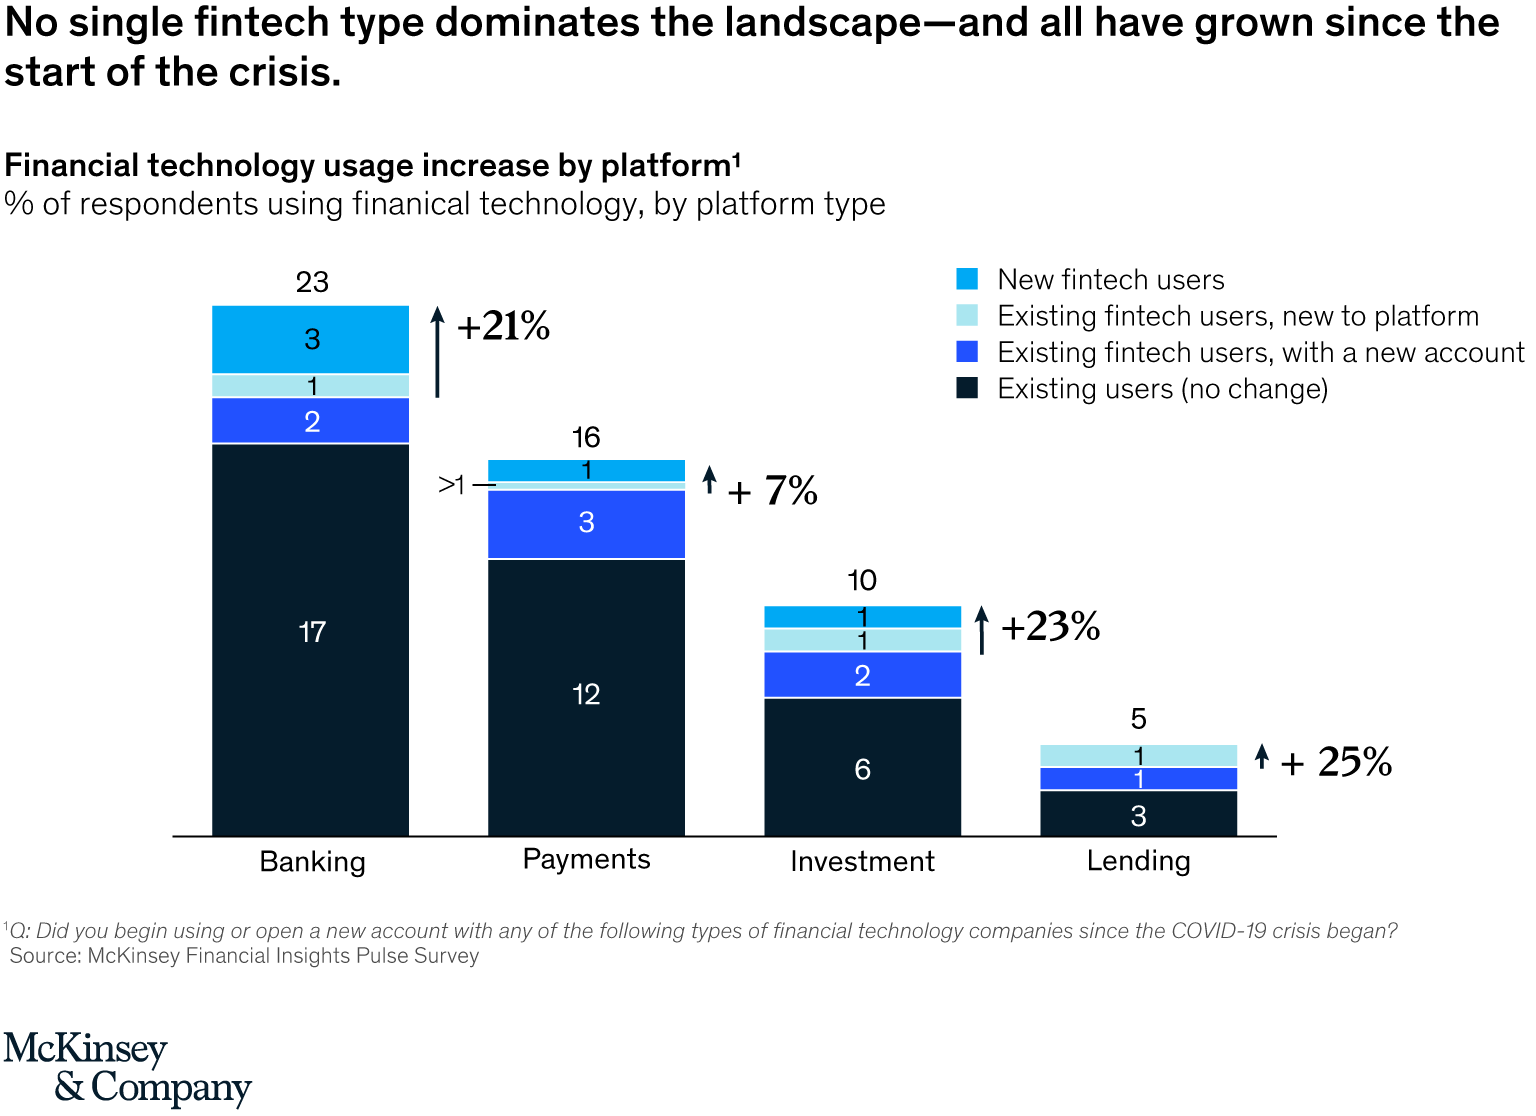 Fintech technology usage increase by platform type, Source- McKinsey Financial Insights Pulse Survey